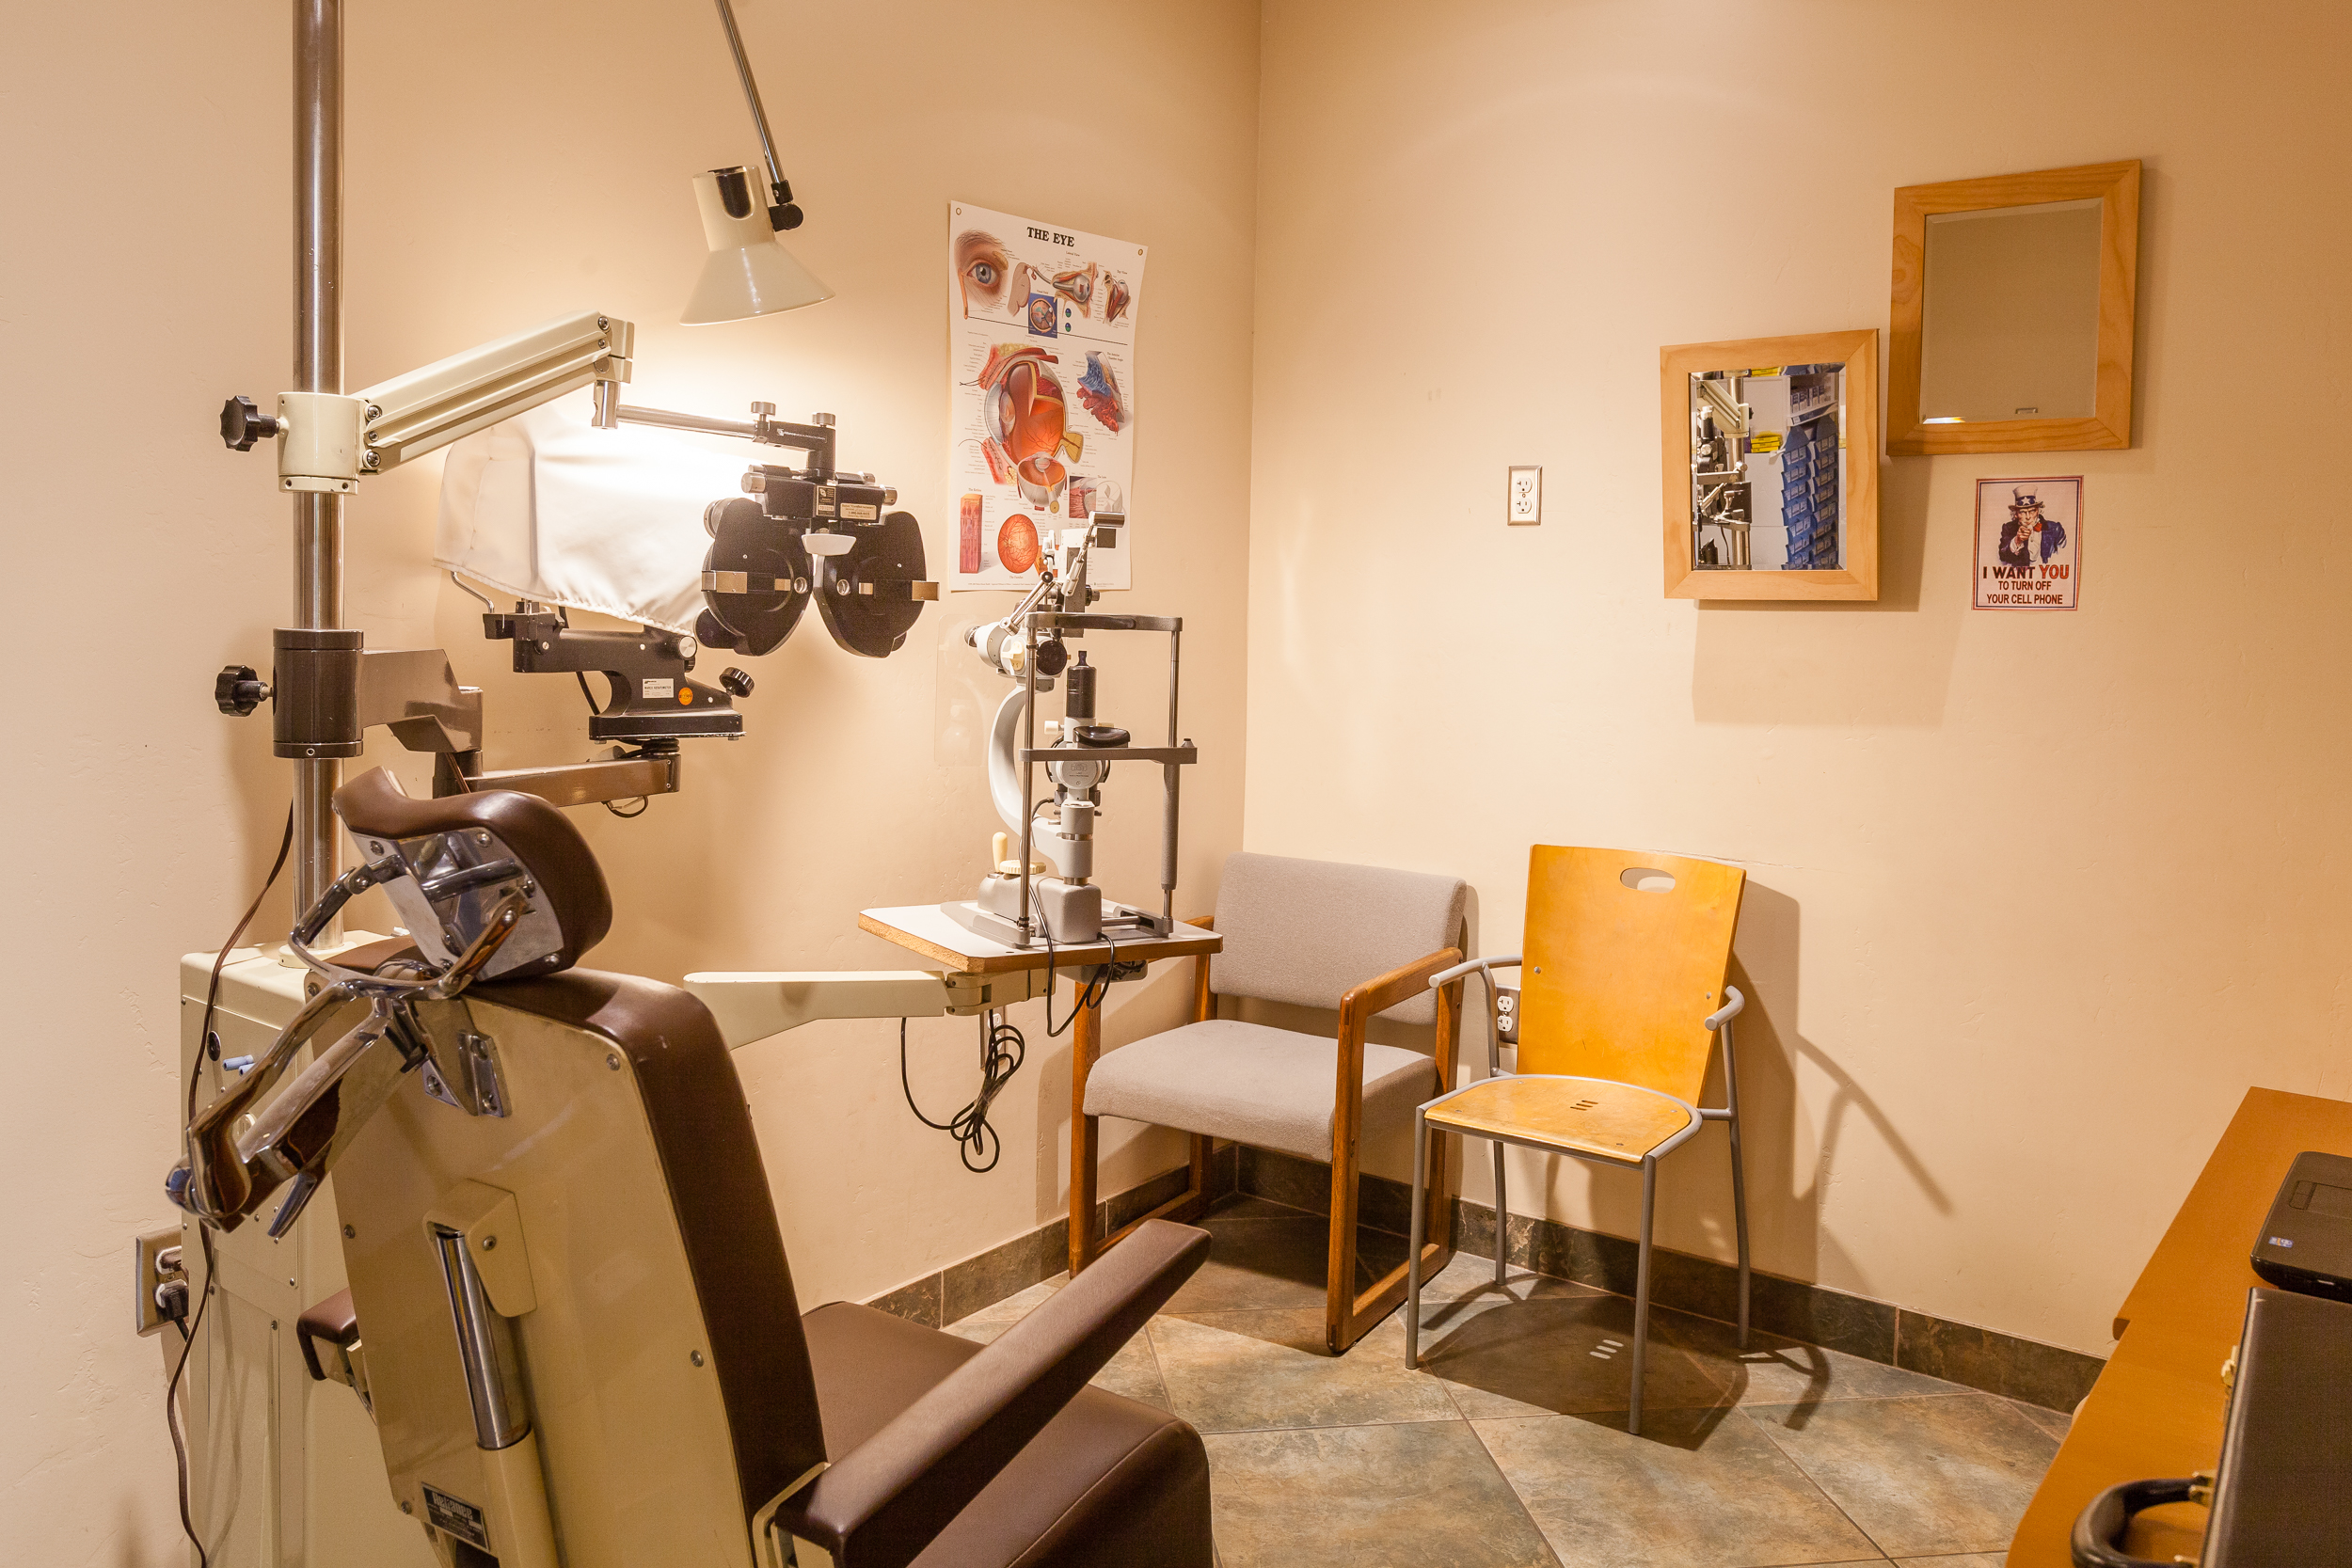 An exam room at San Diego Vision Care Optometry, where Dr. Joseph Toth, OD treats patients.